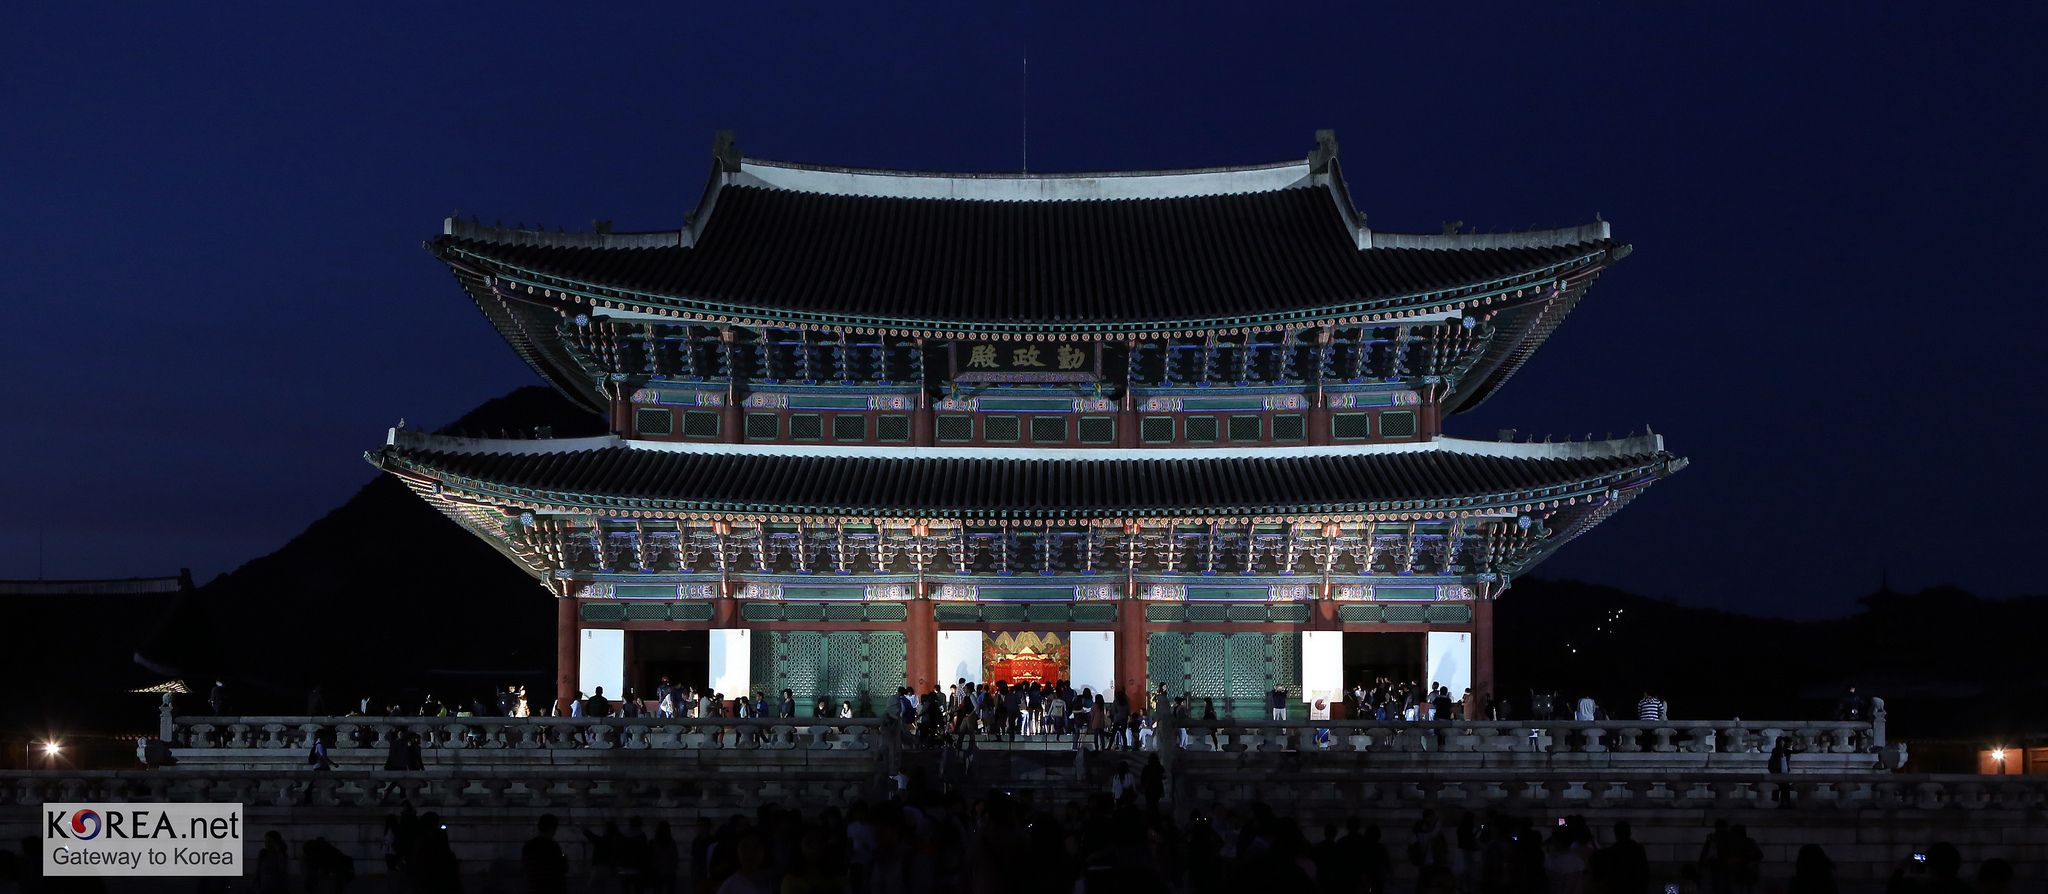 For more info, see http://www.votosky.com/gyeongbokgung-palace-seoul